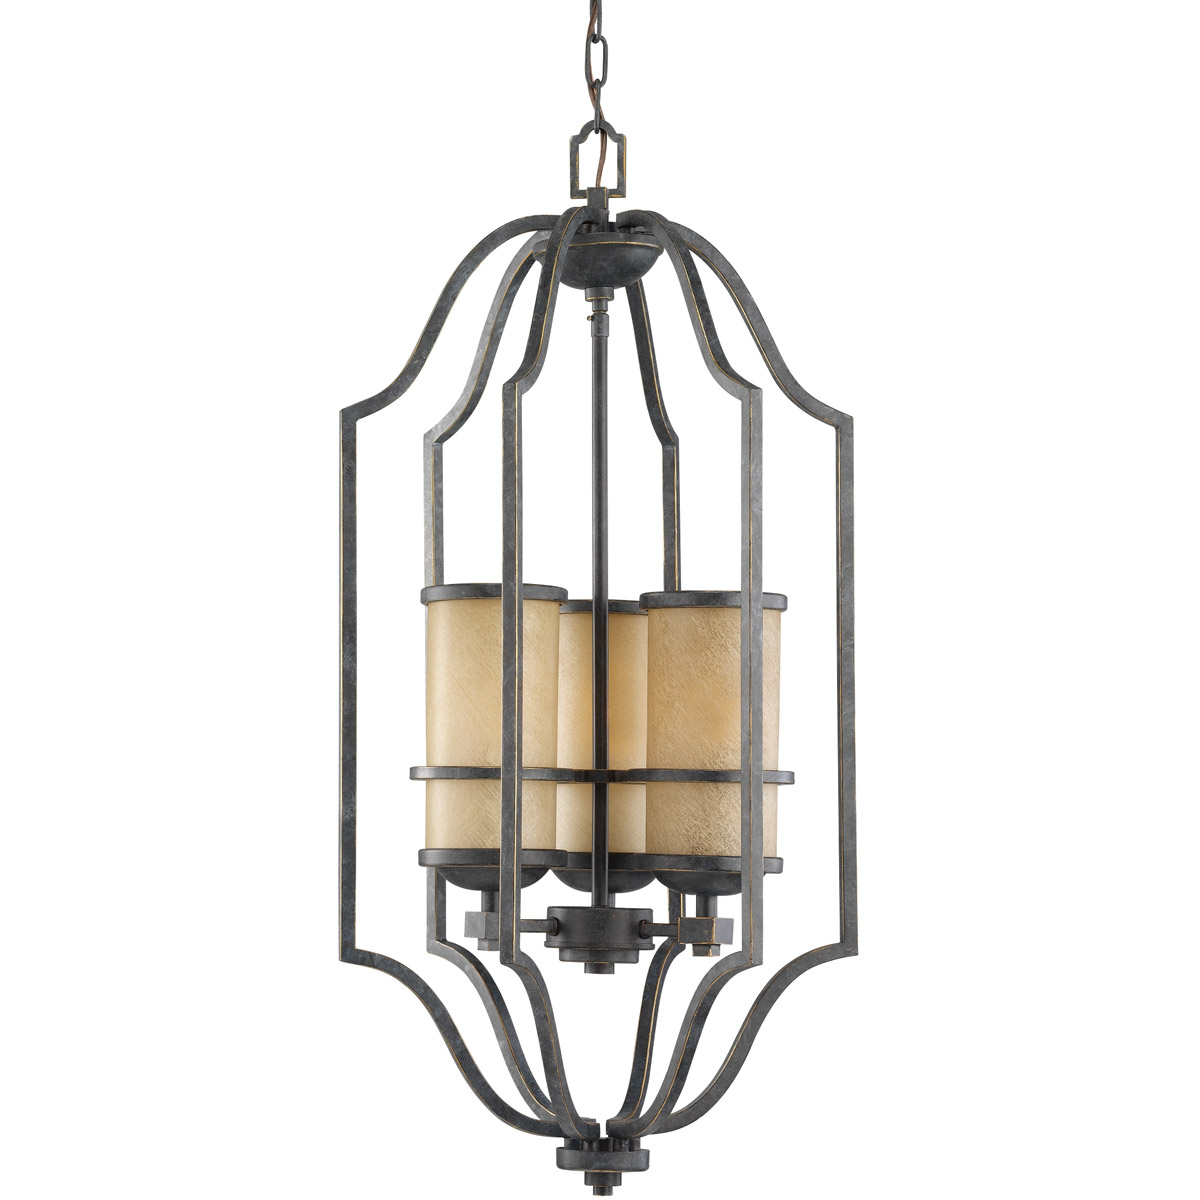 Sea Gull Lighting Roslyn 3 Light Foyer Pendant in Flemish Bronze 51521-845